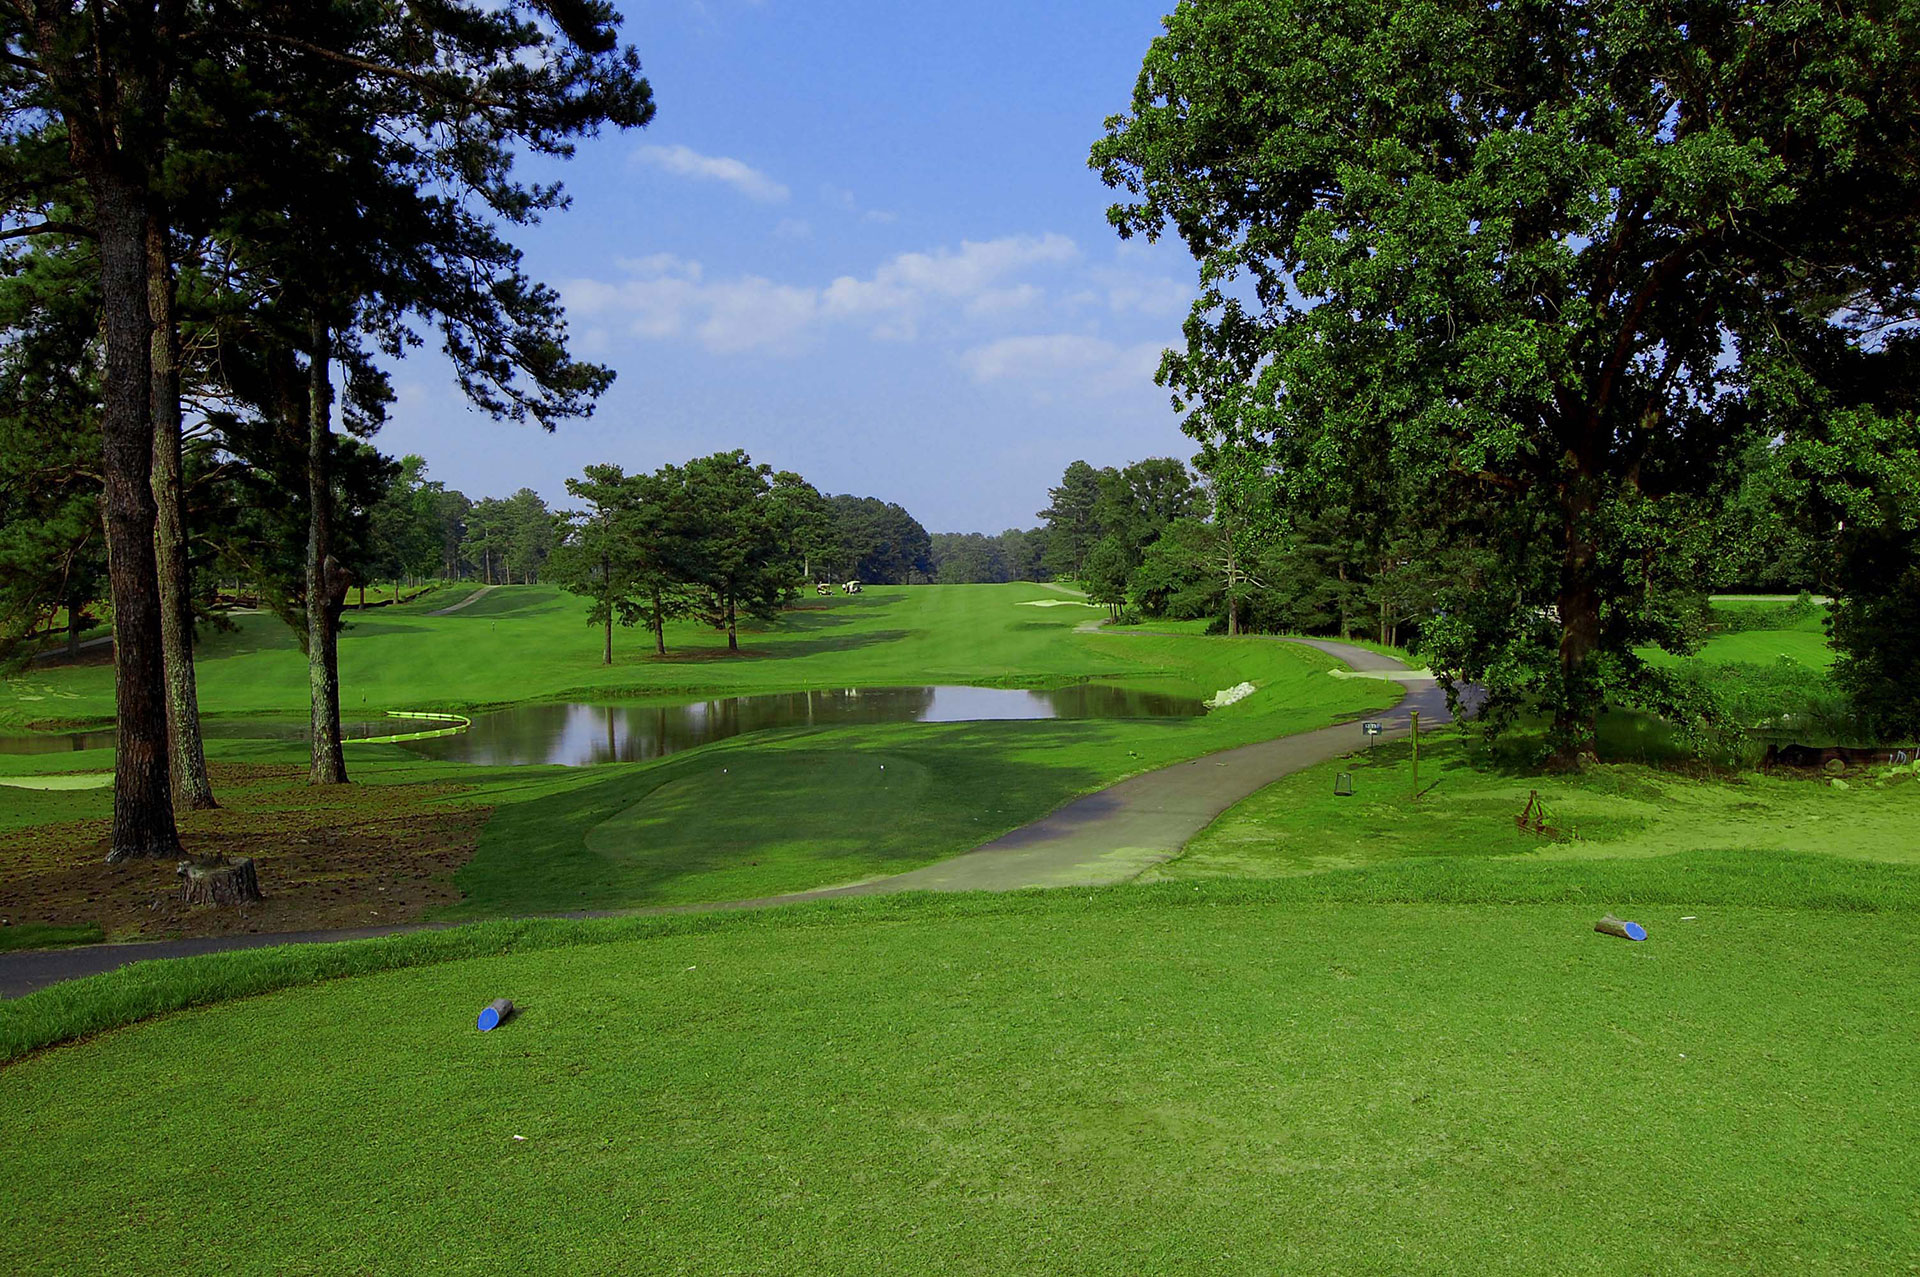 Overview of golf course named Lake Spivey Golf Club